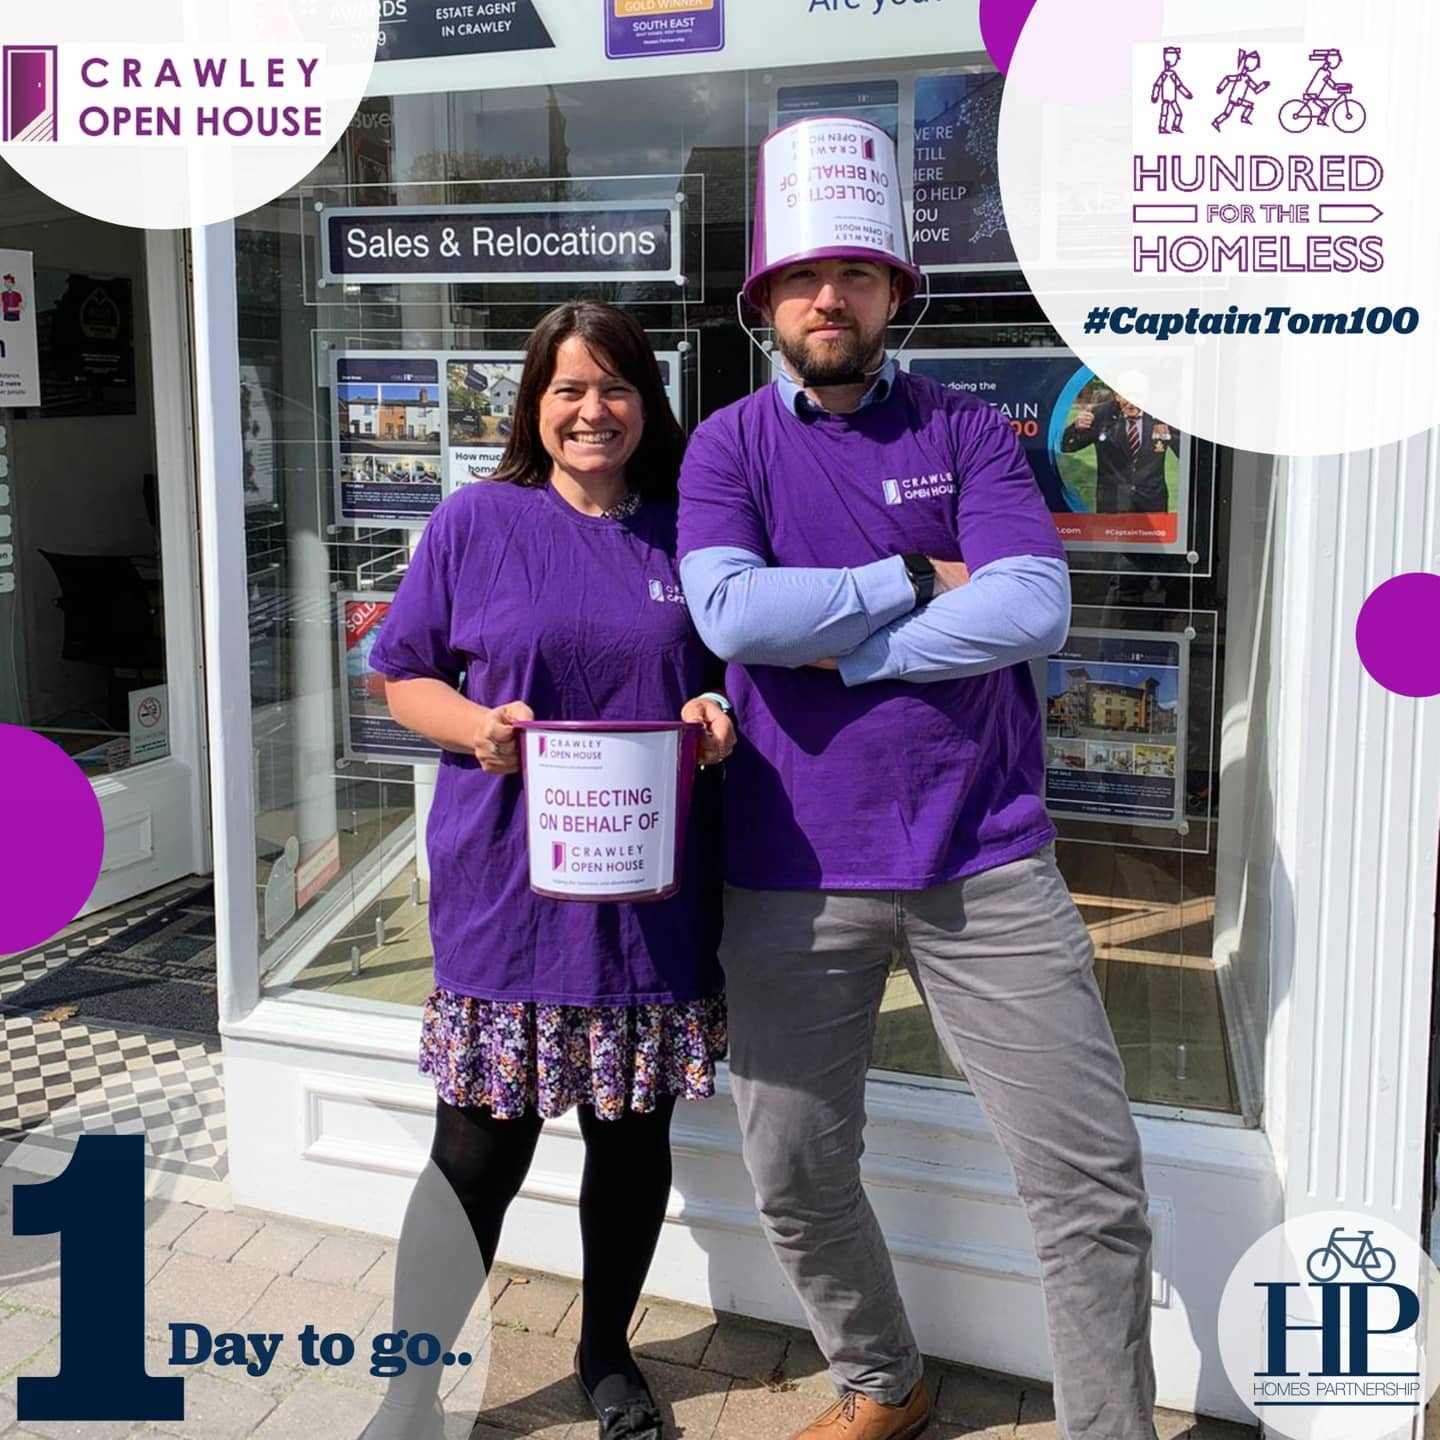 £755.60 RAISED BY HP FOR CRAWLEY OPEN HOUSE!